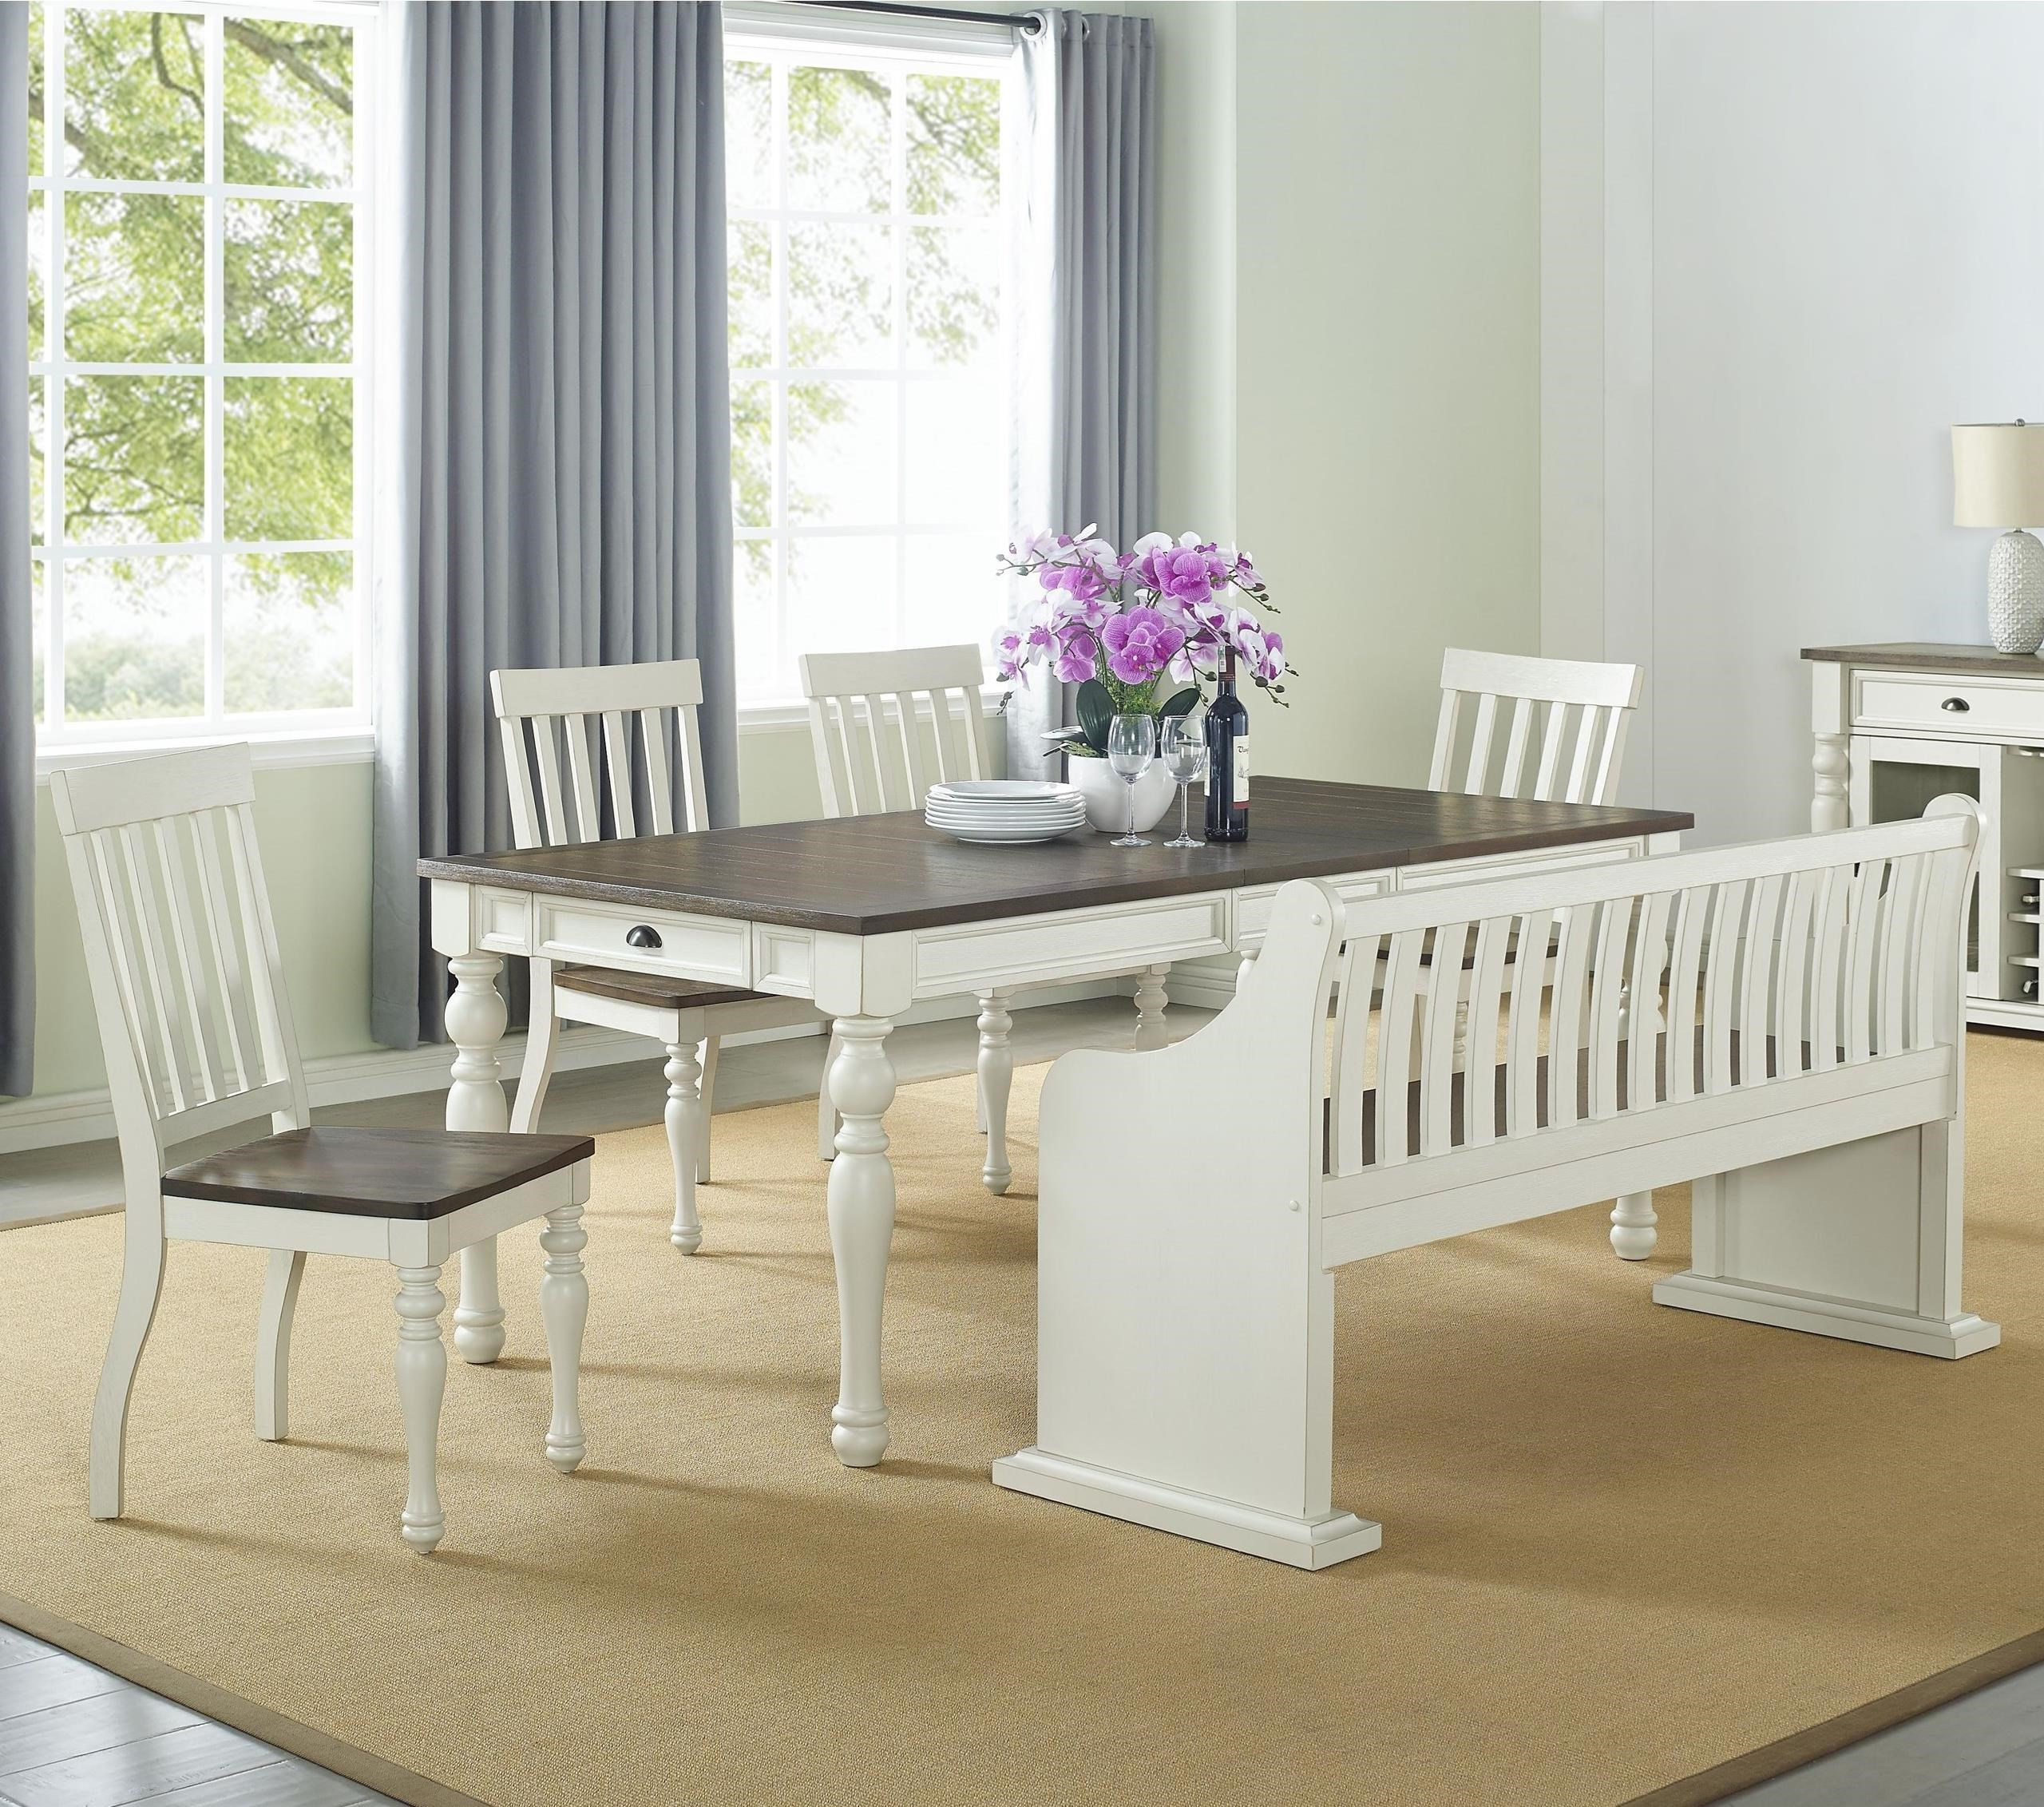 Joanna Dining Set with Bench with Back by Steve Silver at Walker's Furniture